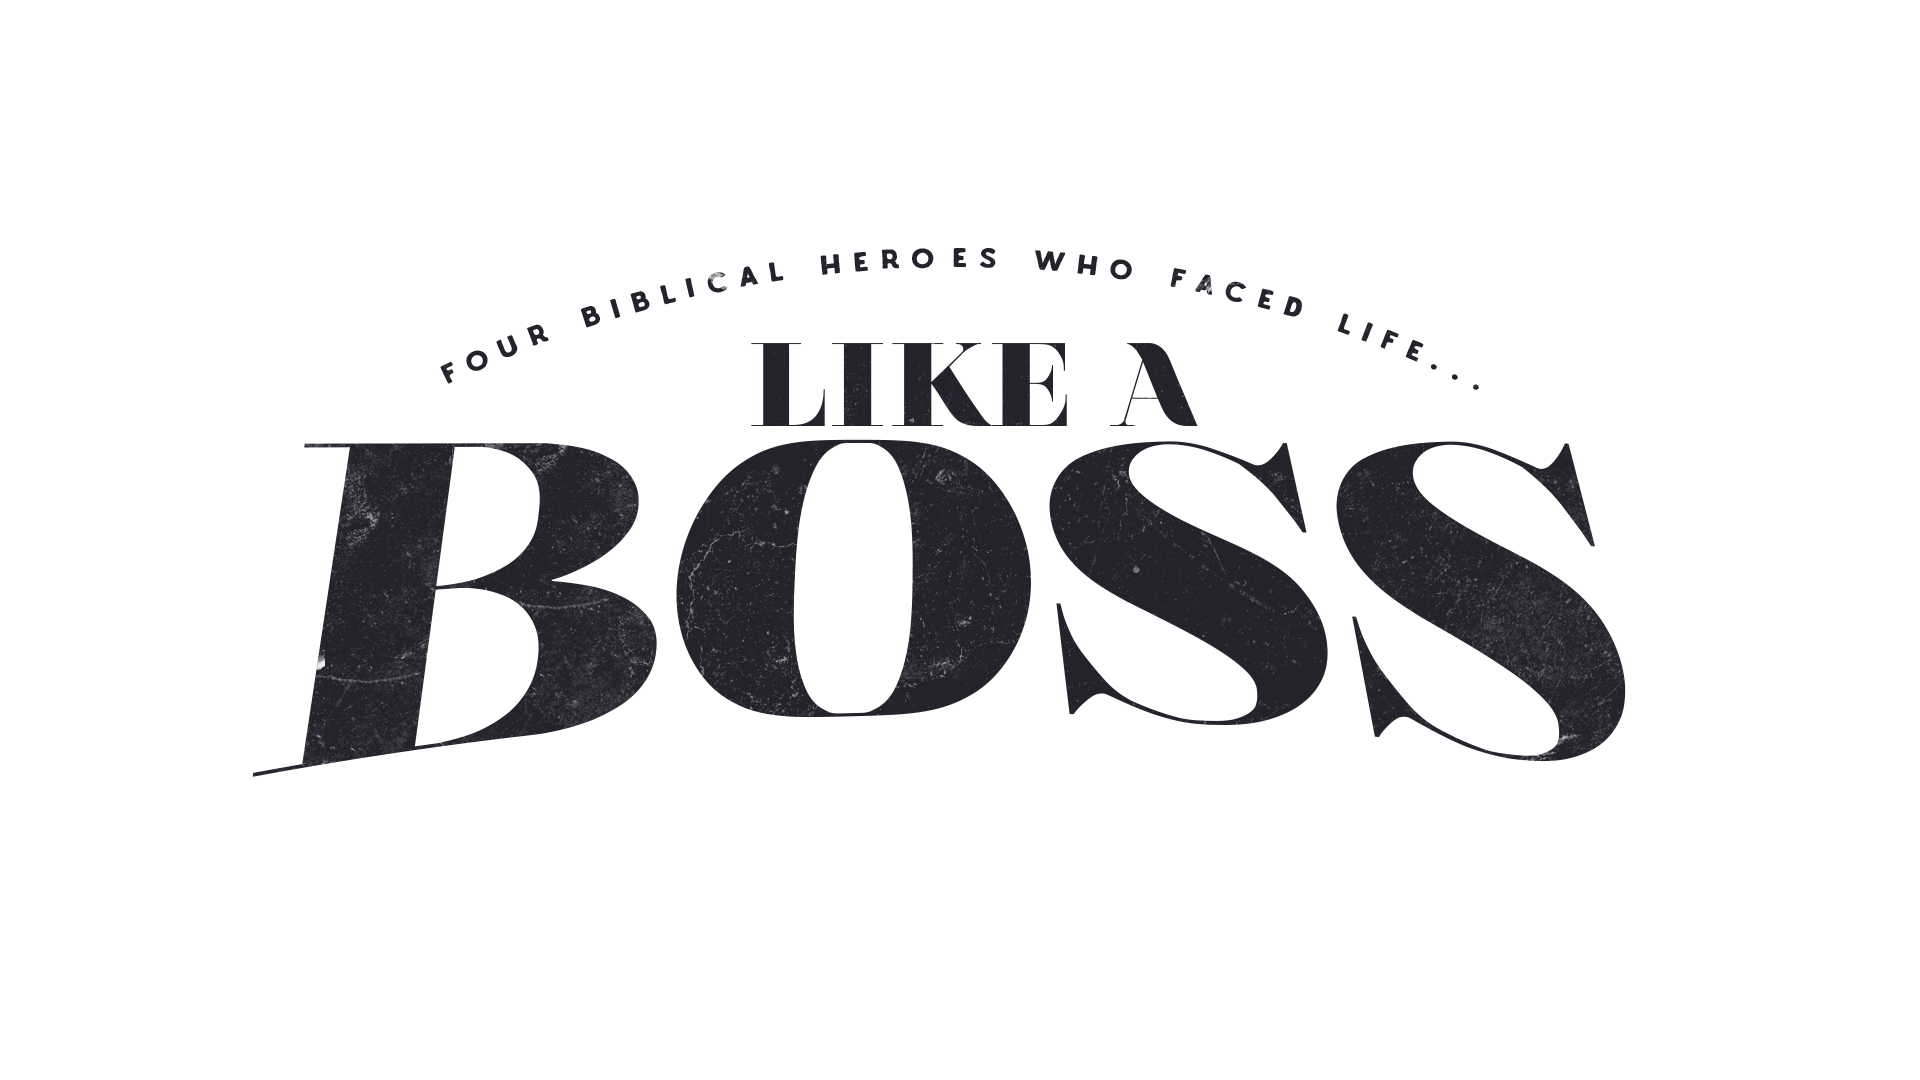 Like a Boss PlusPng pluspng.com - Like a Boss PNG - Avtocompany PNG